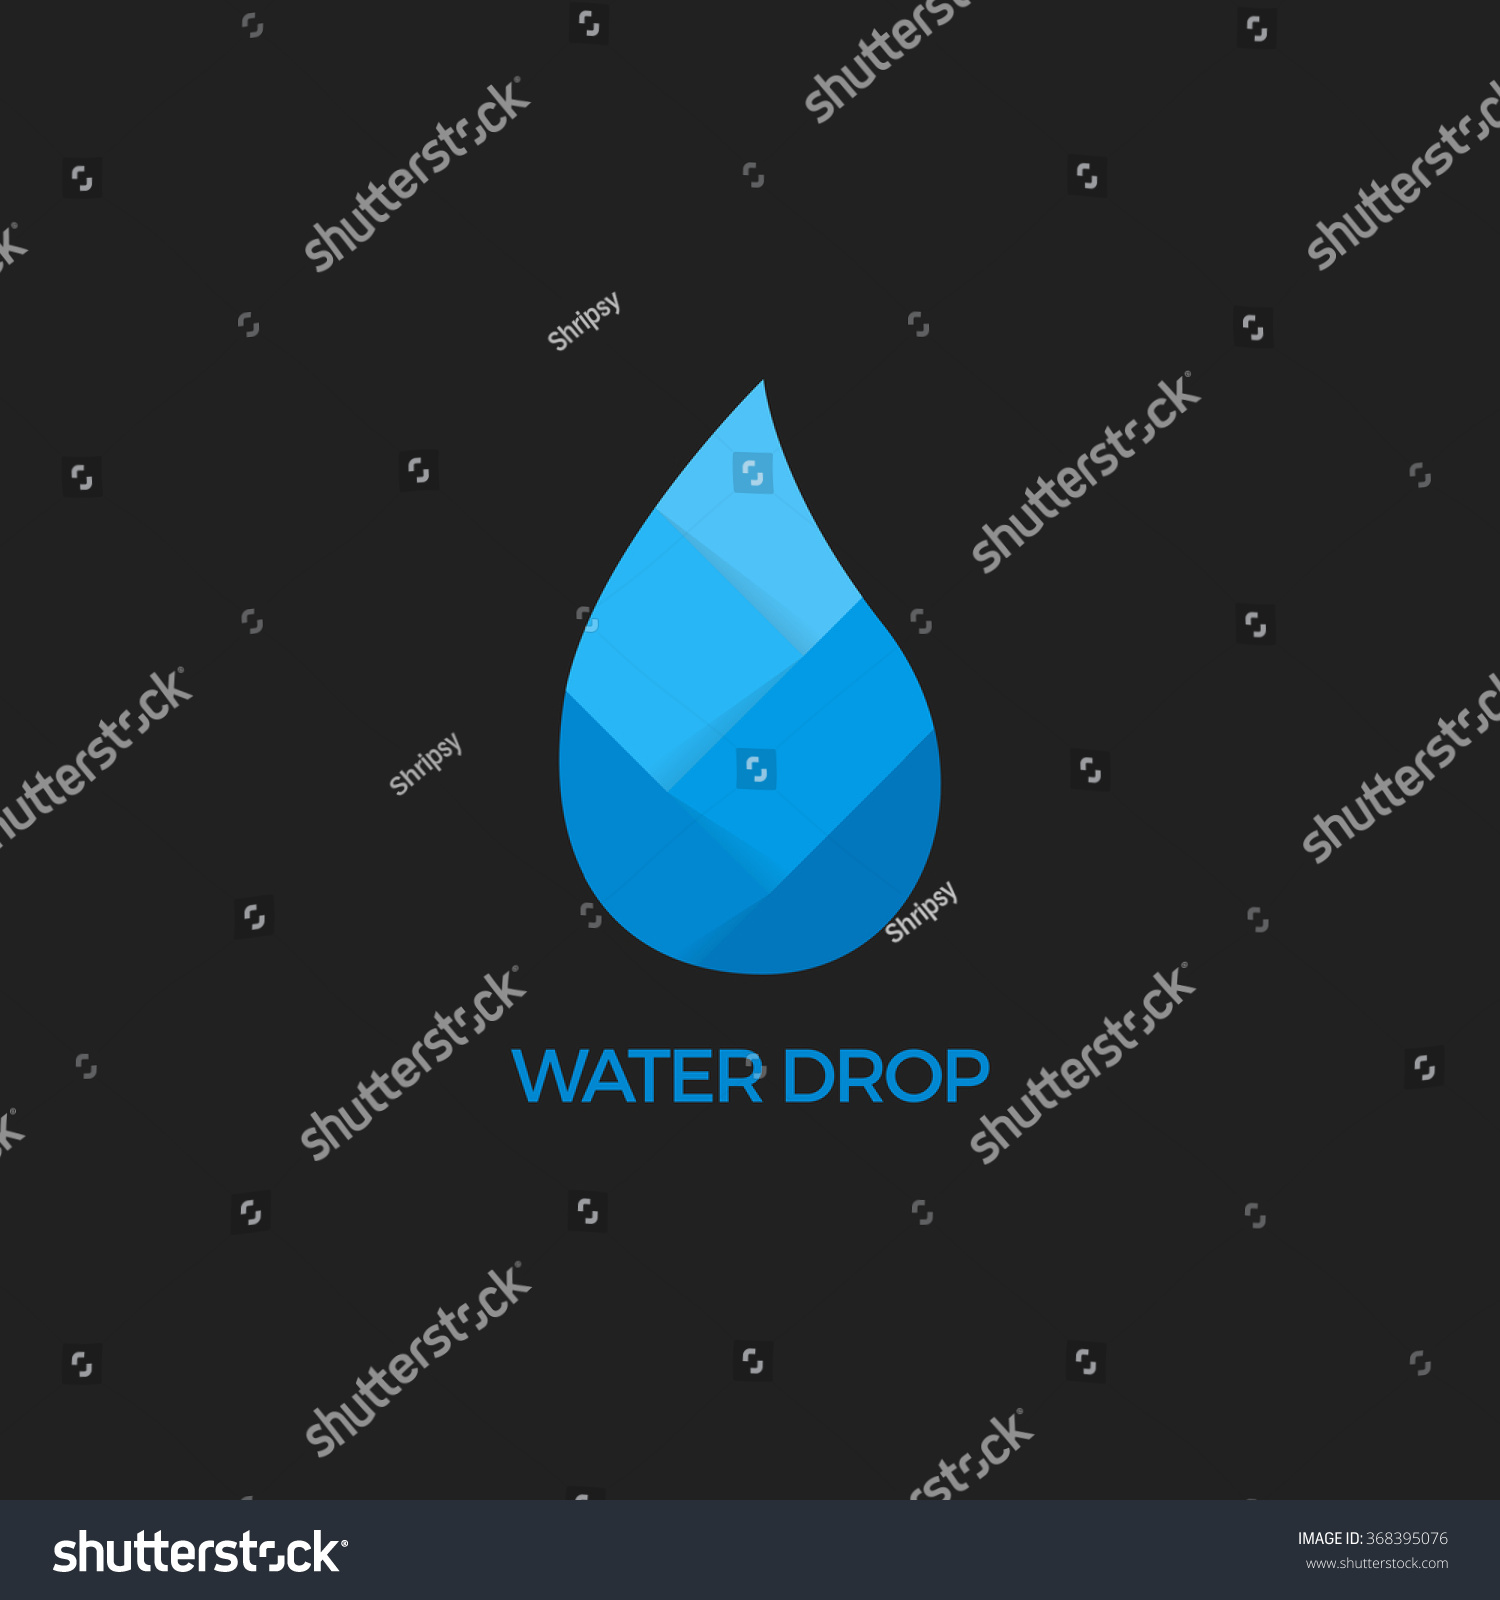 Water Drop Isolated Logo Drop Abstract Stock Vector ... - photo#21